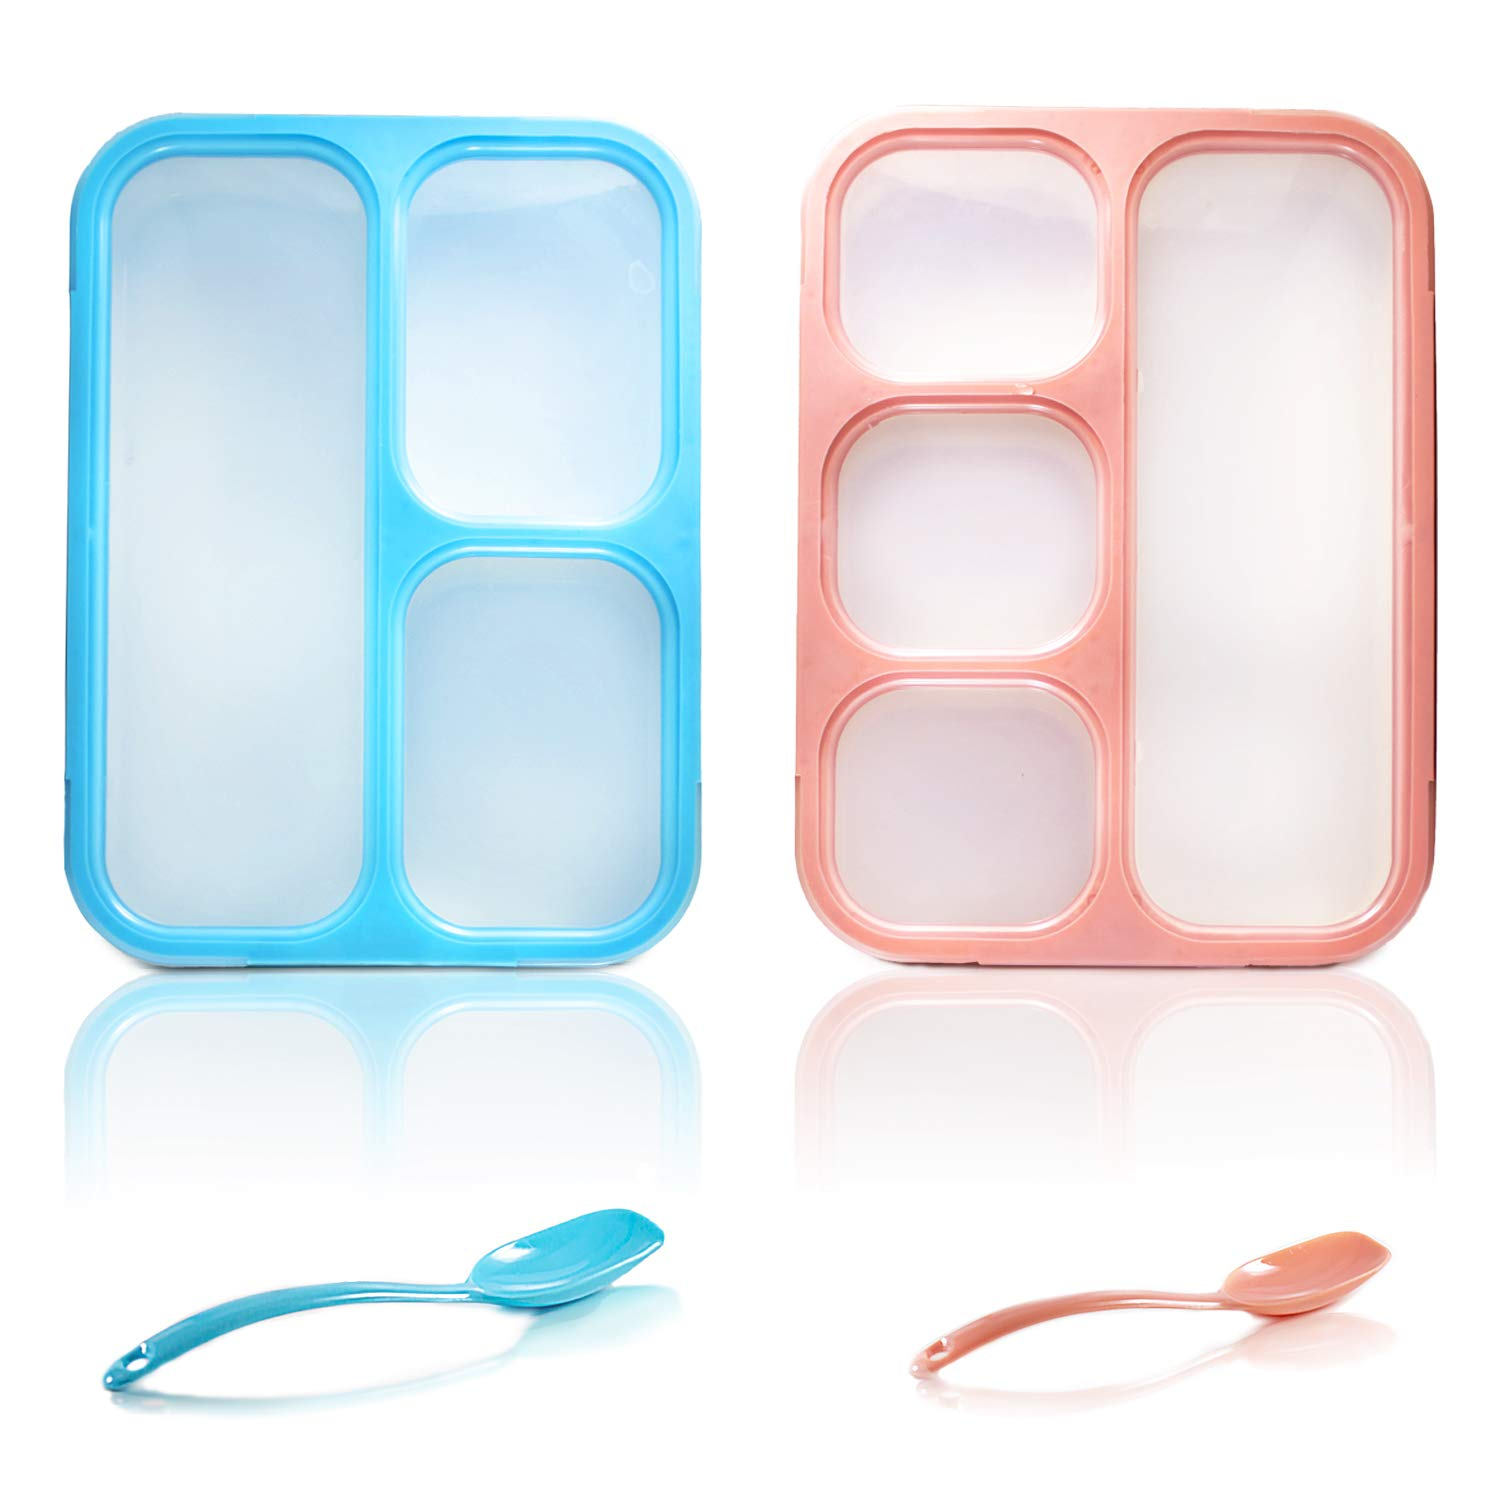 532545b0b151 Krama Fresh - Bento Lunch Box Kids 34 Oz, 3 and 4 Compartment, Lunchbox  Containers for Boys, Girls, Adults, Teens, Leak-proof Food Storage,  Microwave ...